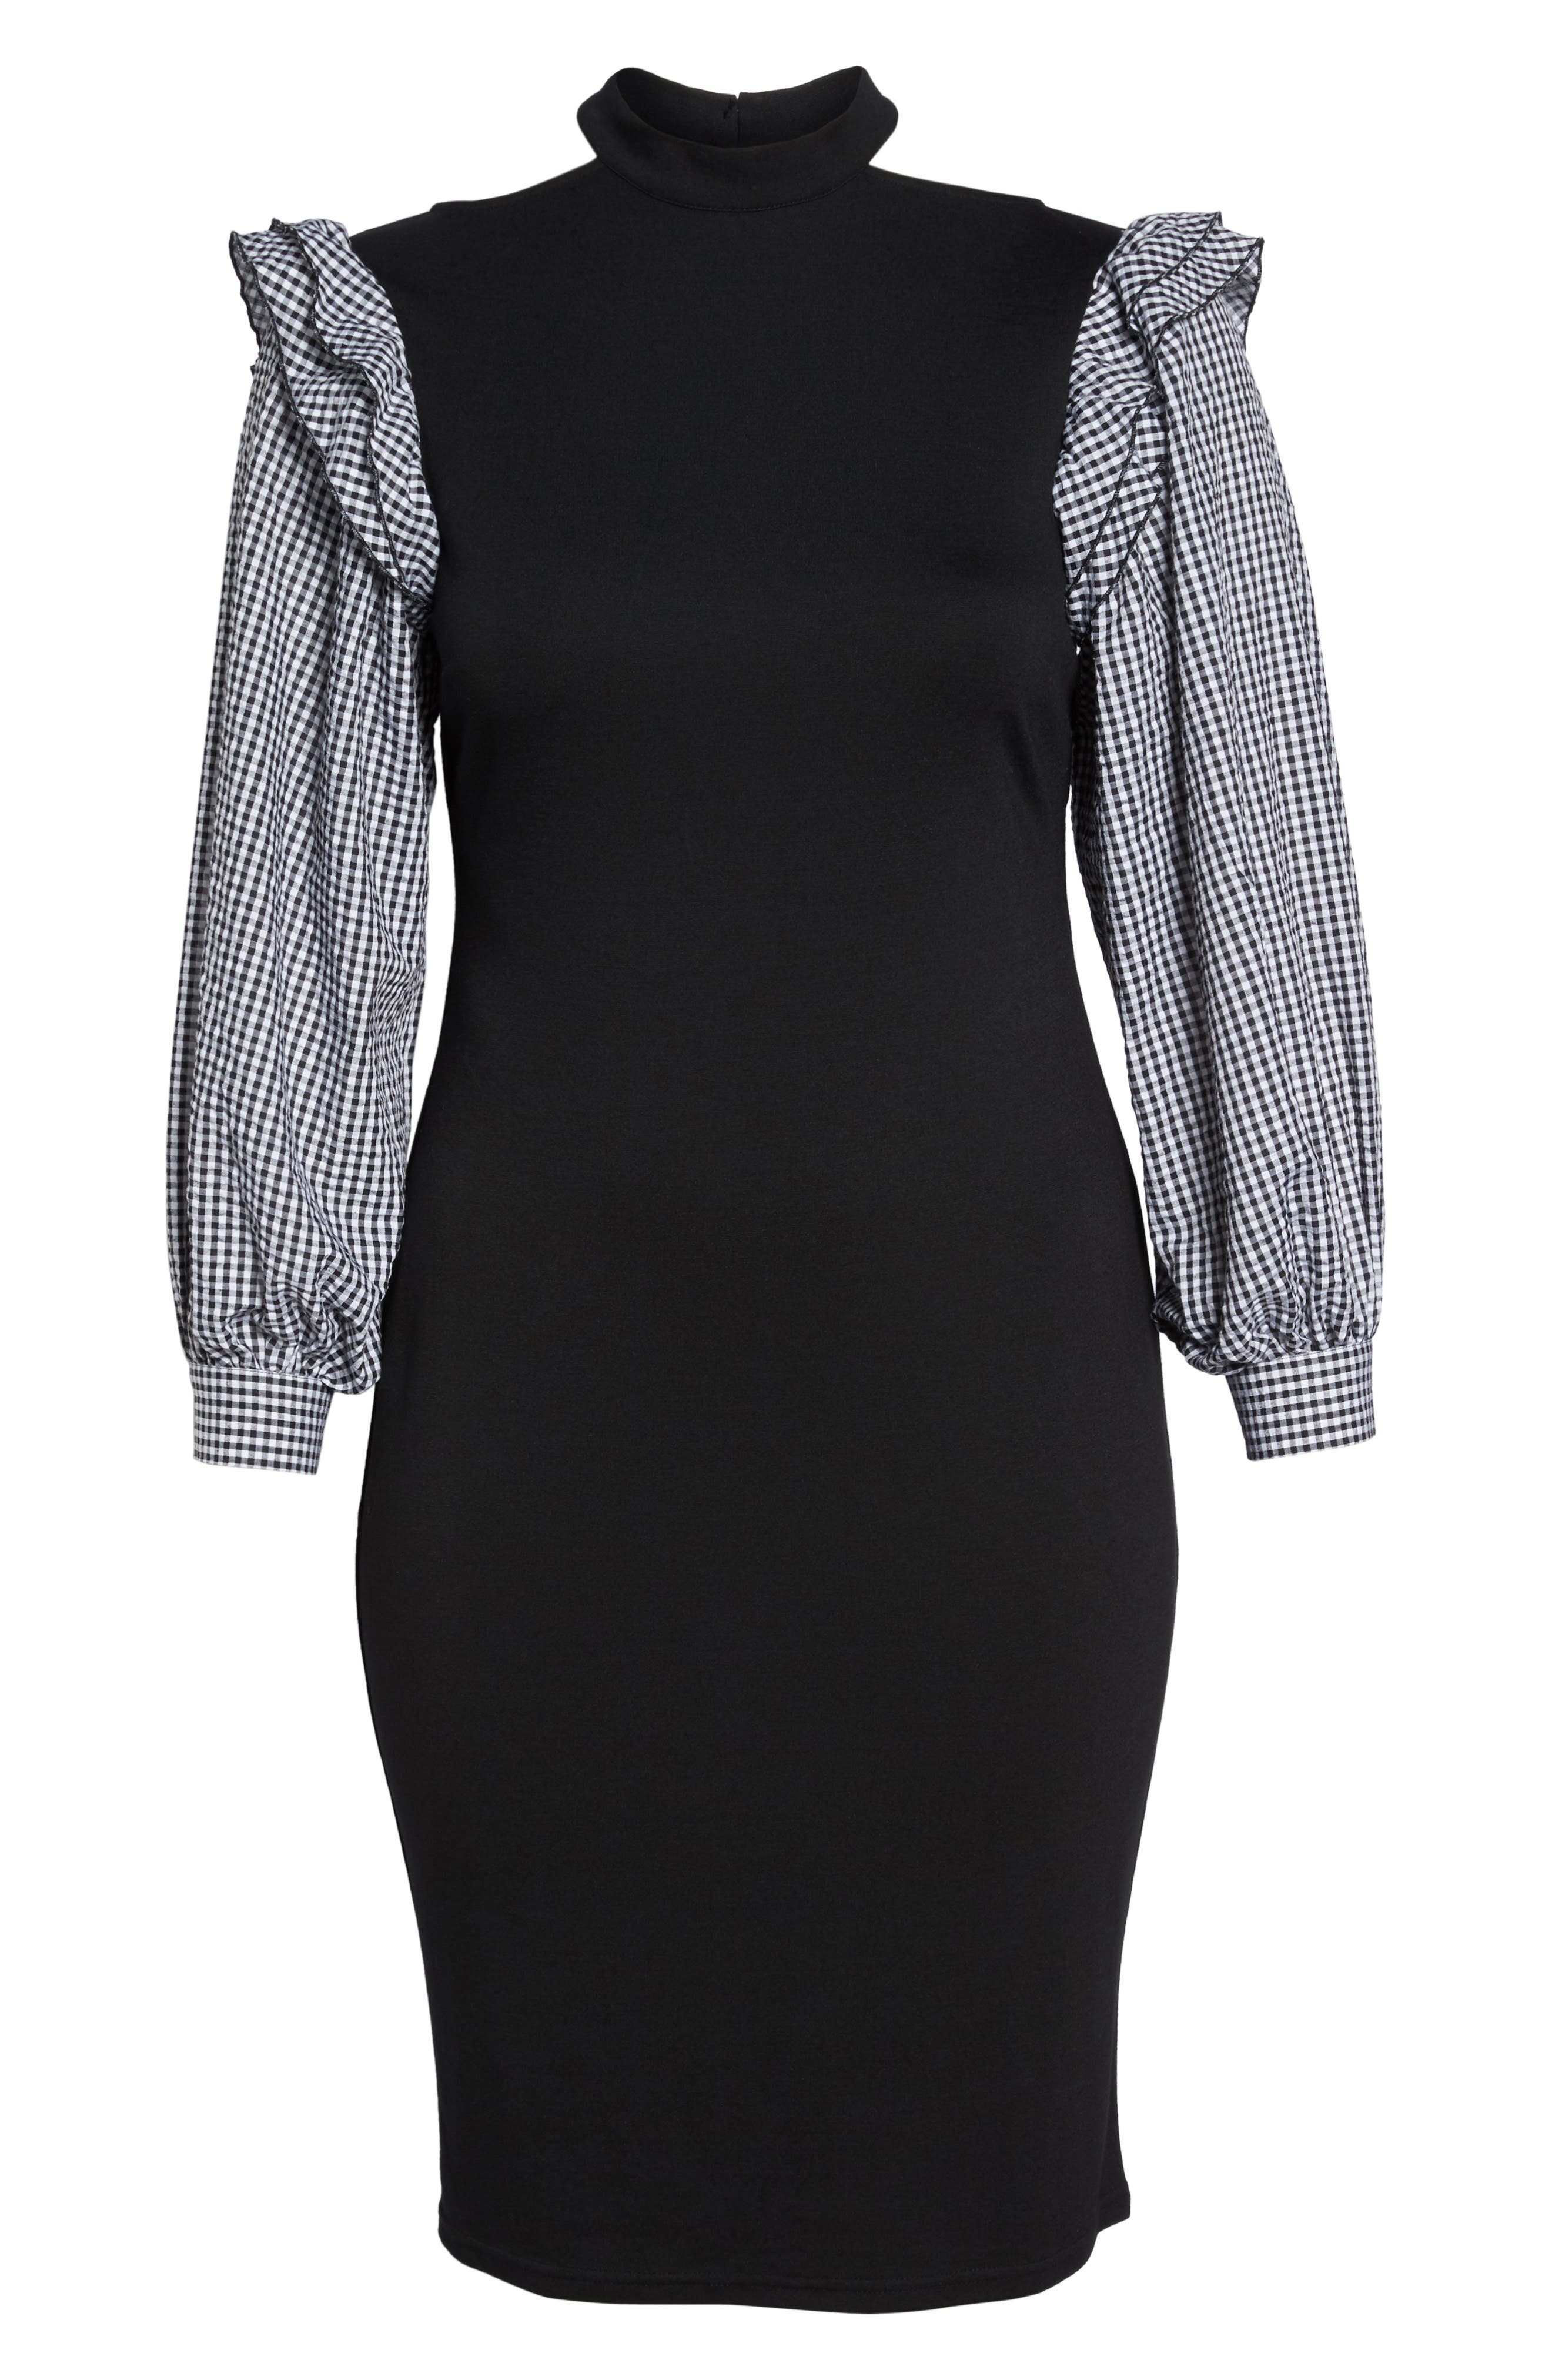 Gingham Sleeve Body-Con Dress,                             Alternate thumbnail 6, color,                             001